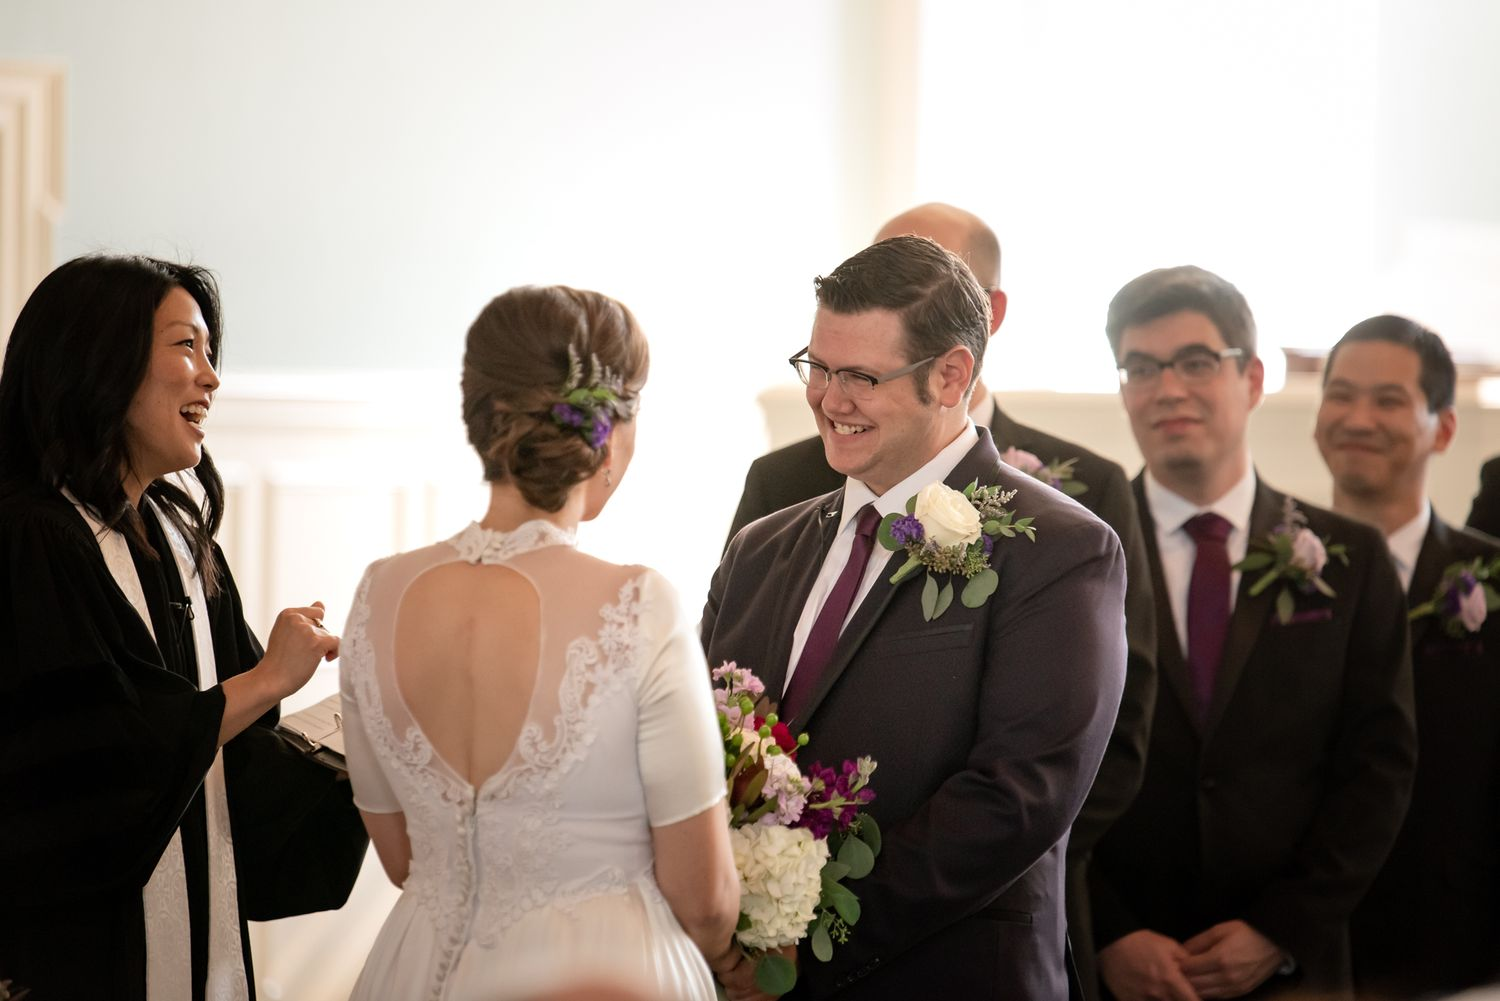 pittsburgh wedding groom and bride at end of aisle with grom smiling and groomsmen looking at couple